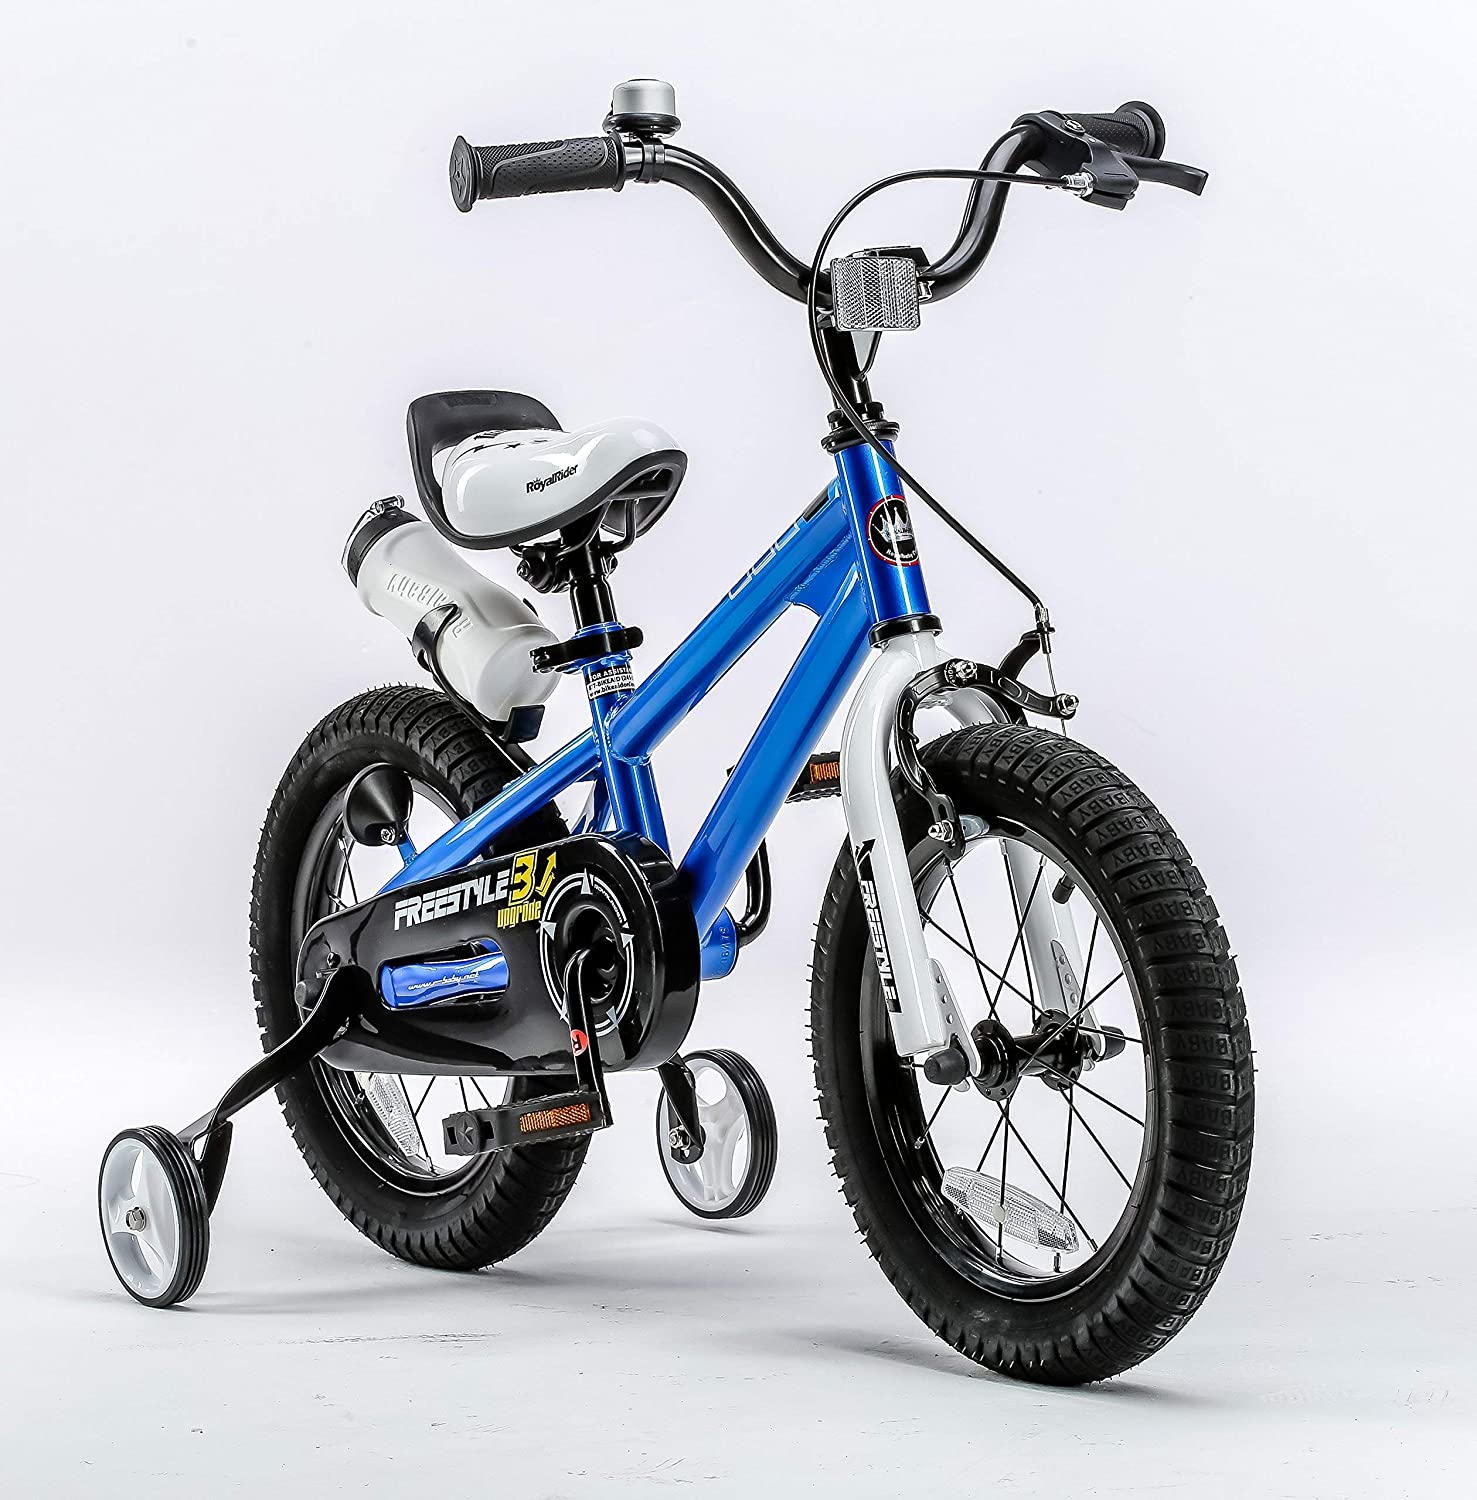 Amazon.com: RoyalBaby Freestyle Bicicleta infantil para ...